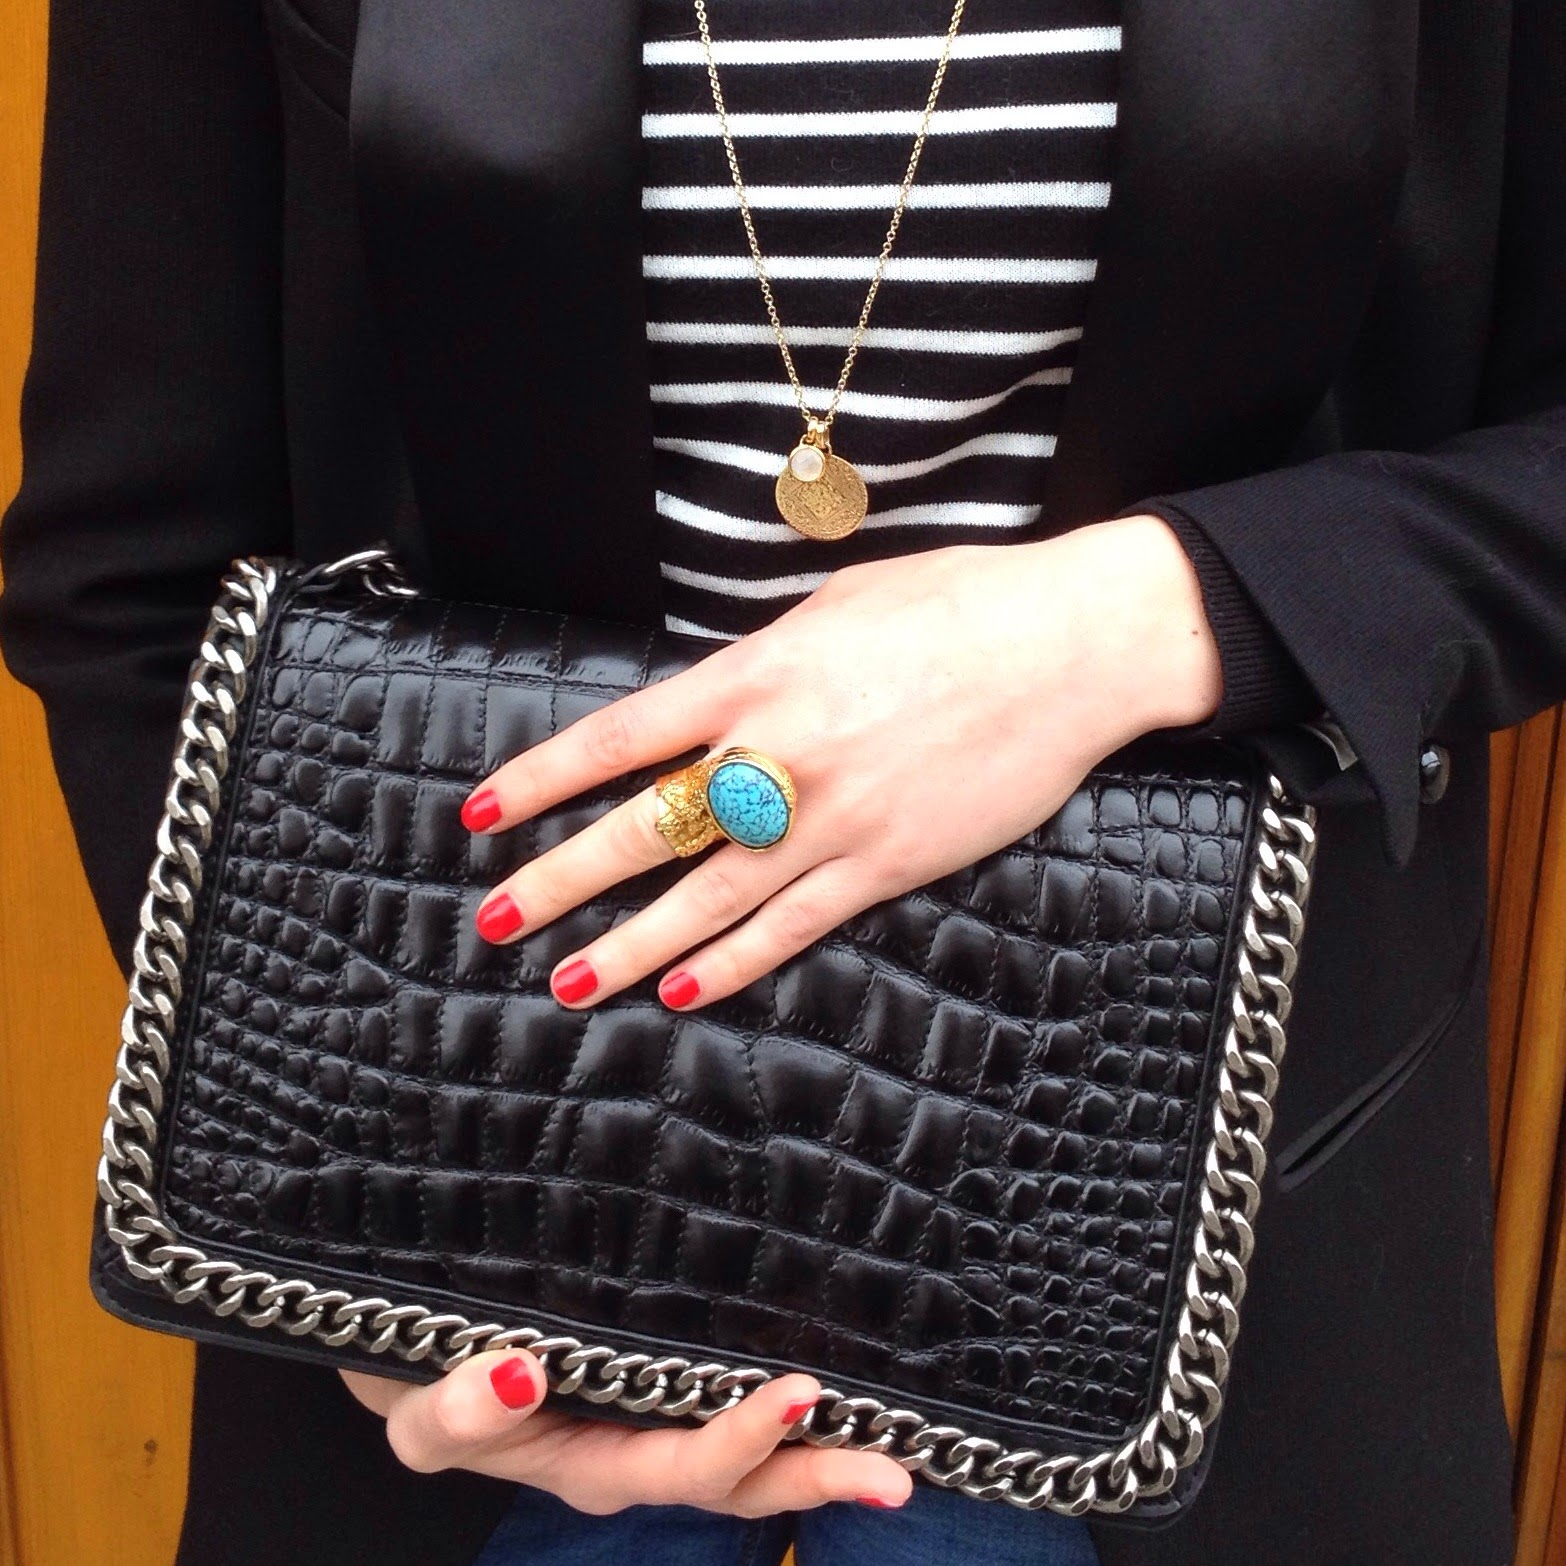 zara bag, zara croco bag, chanel boy bag, chanel boy zara bag, ysl ring, ysl arty, monica vinader, monica vinader necklace